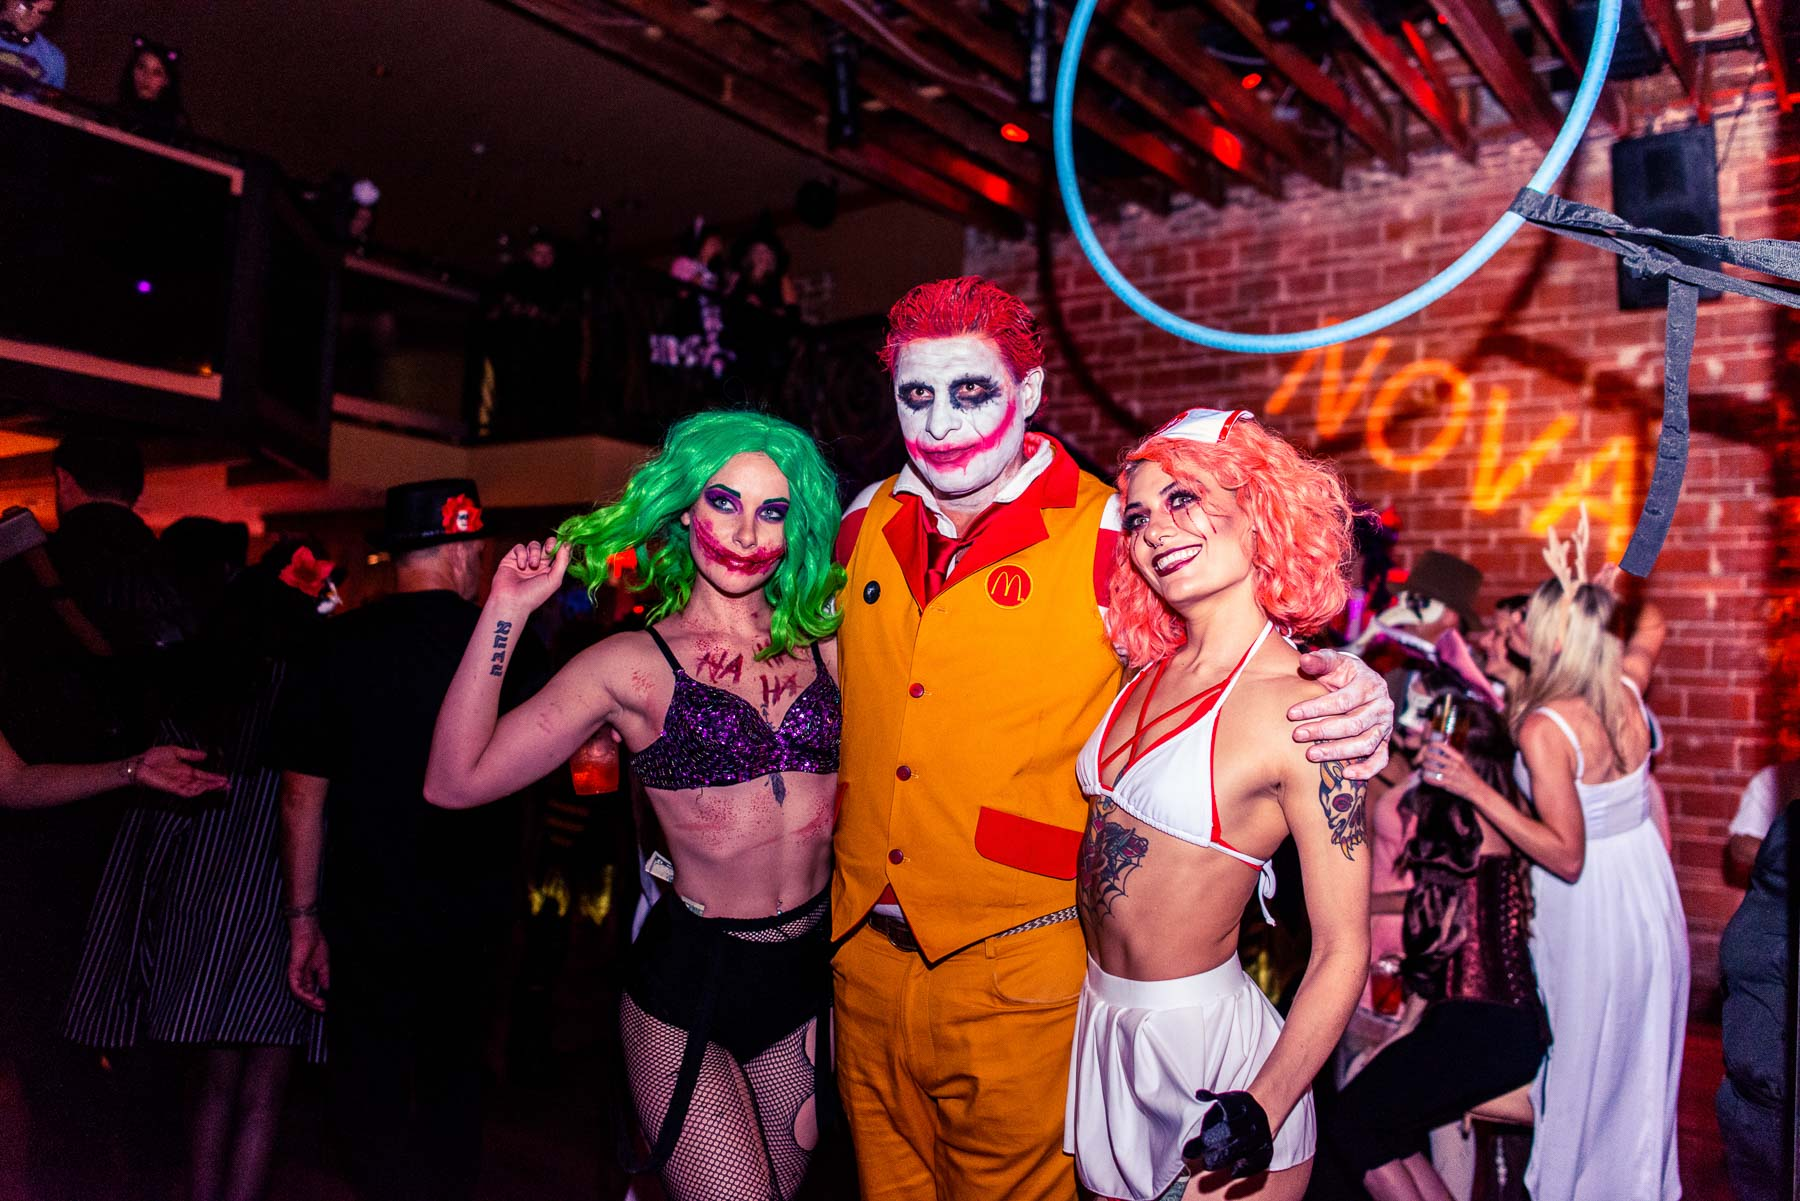 Novaween 13 Costumes and Contests on Halloween Night 10-31-2019 at Downtown St. Pete venue NOVA 535